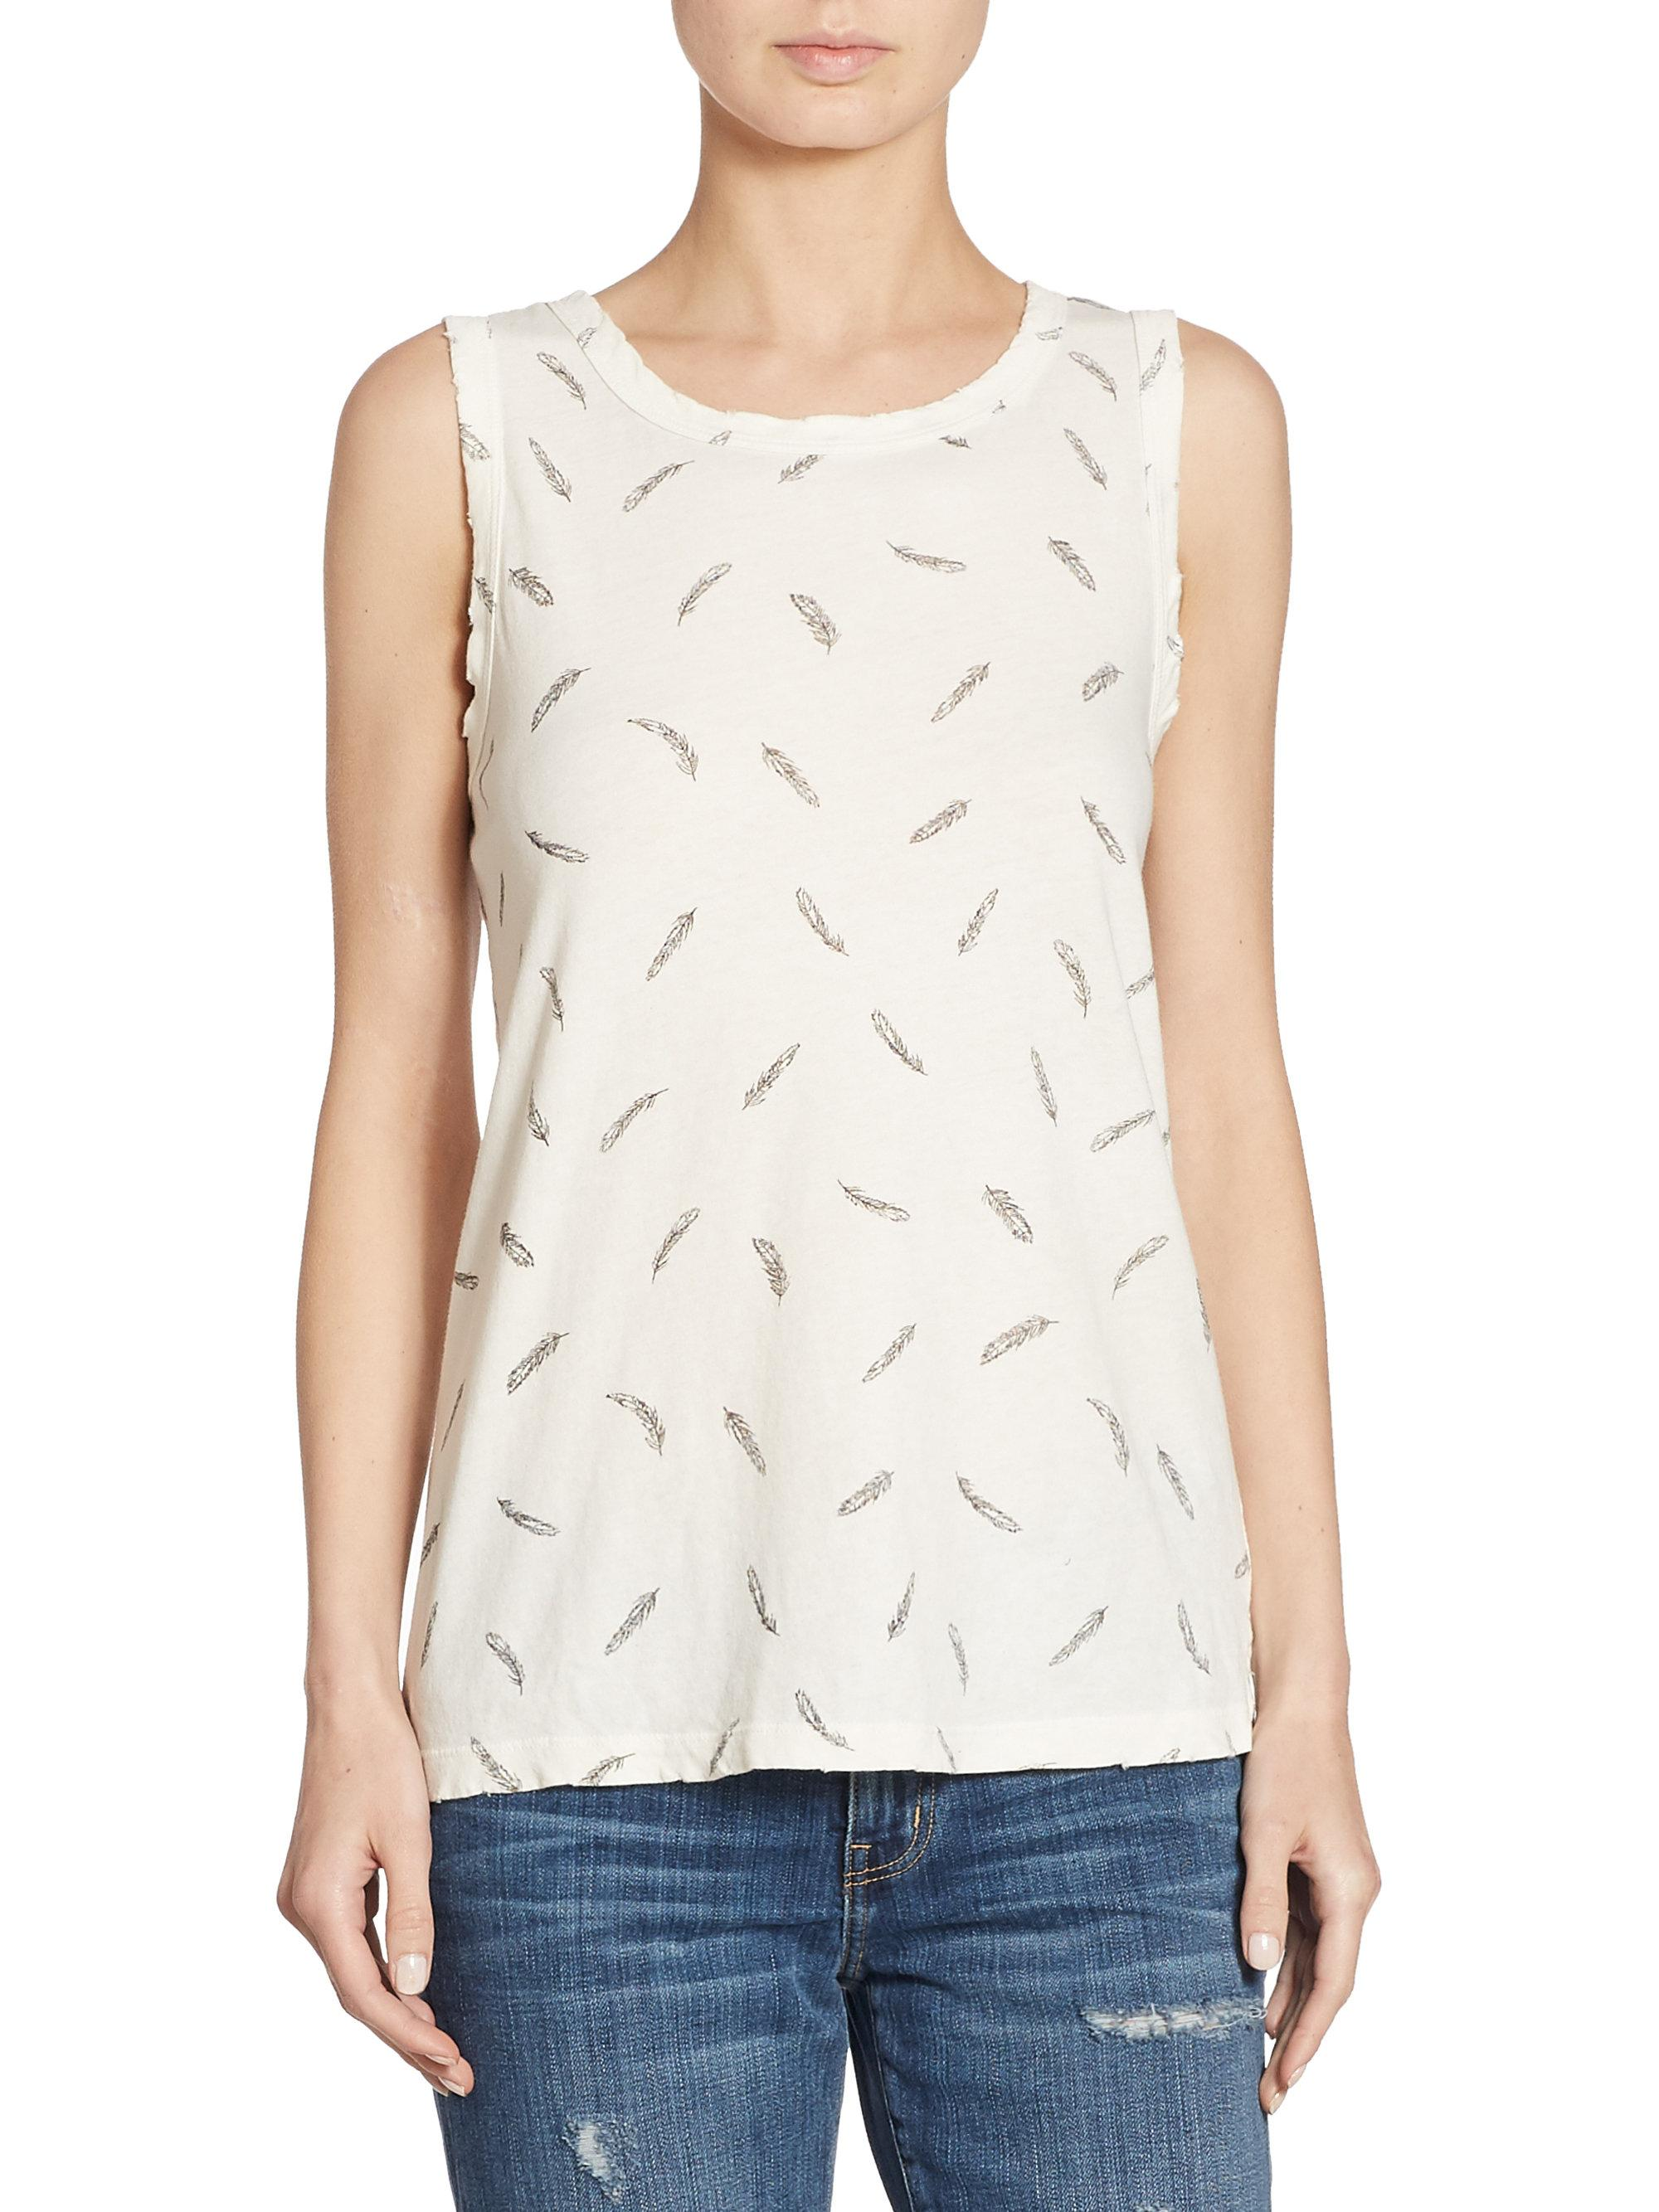 2b0cf1361c09a Lyst - Current Elliott Feather Printed Muscle Tee in White